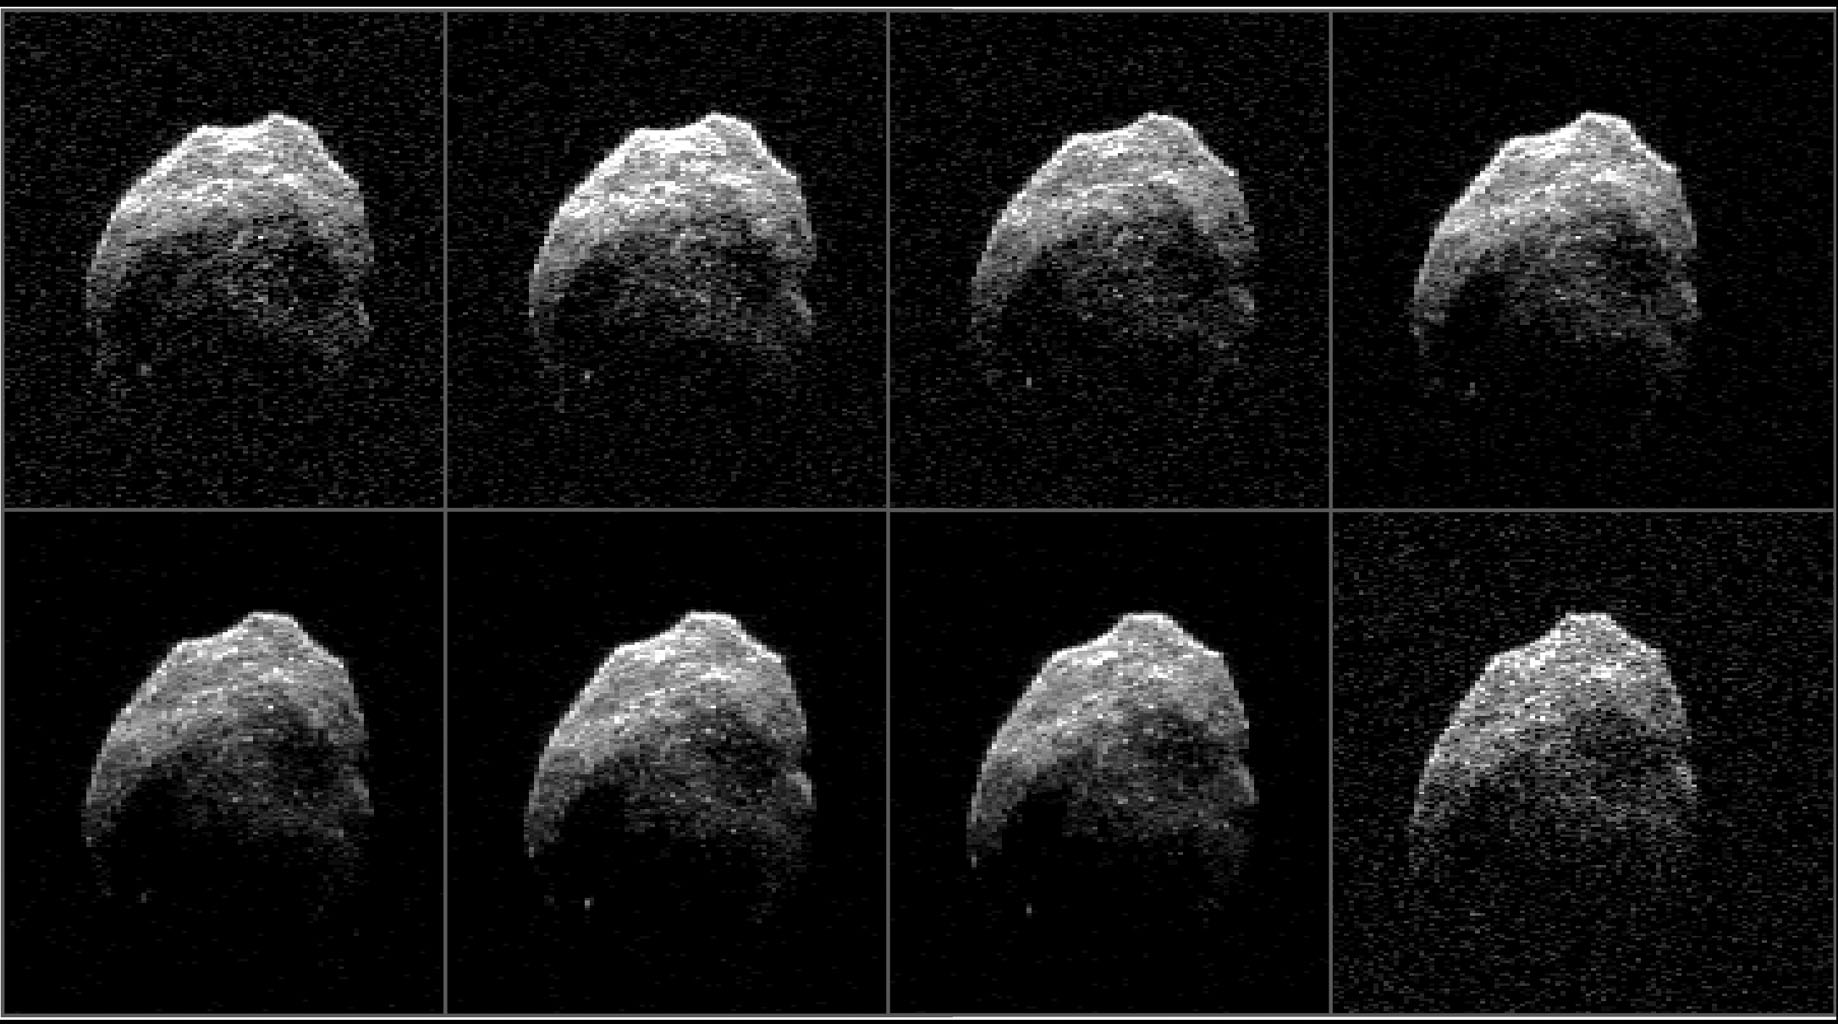 A skull-shaped asteroid will approach the Earth again in 2018